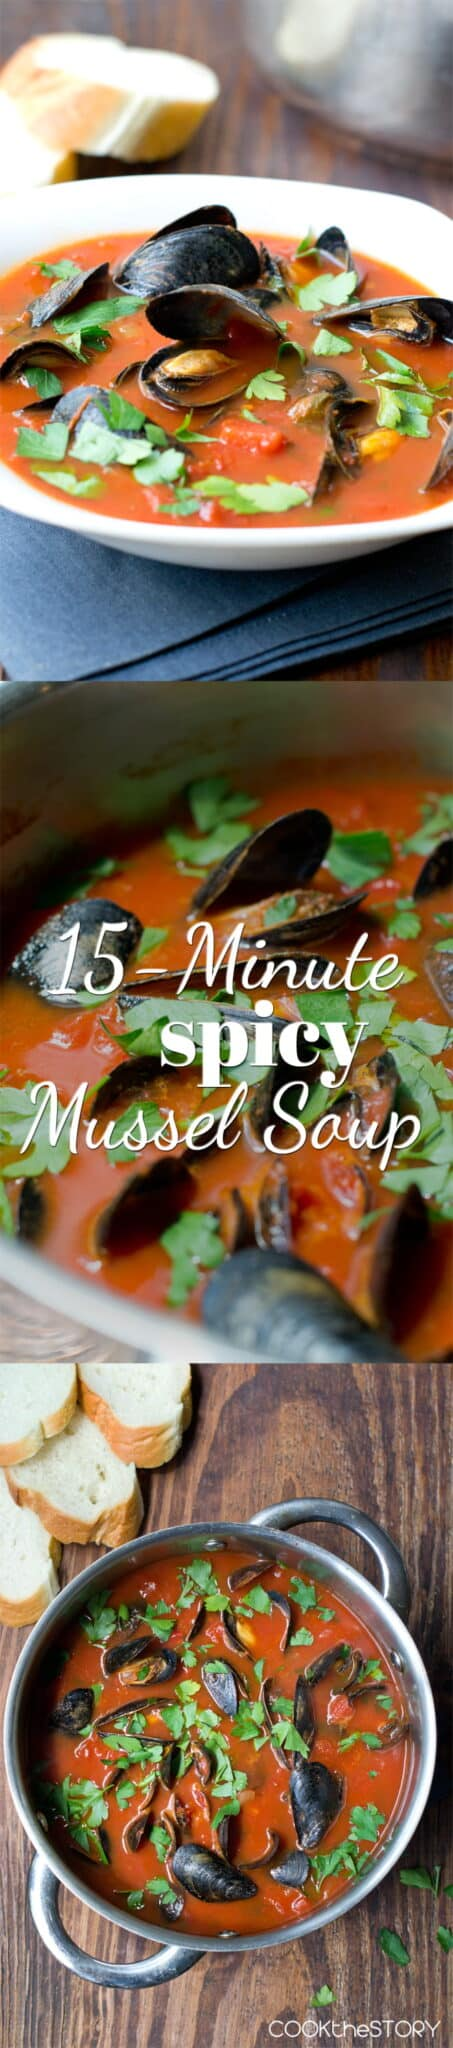 15-Minute Spicy Mussel Soup